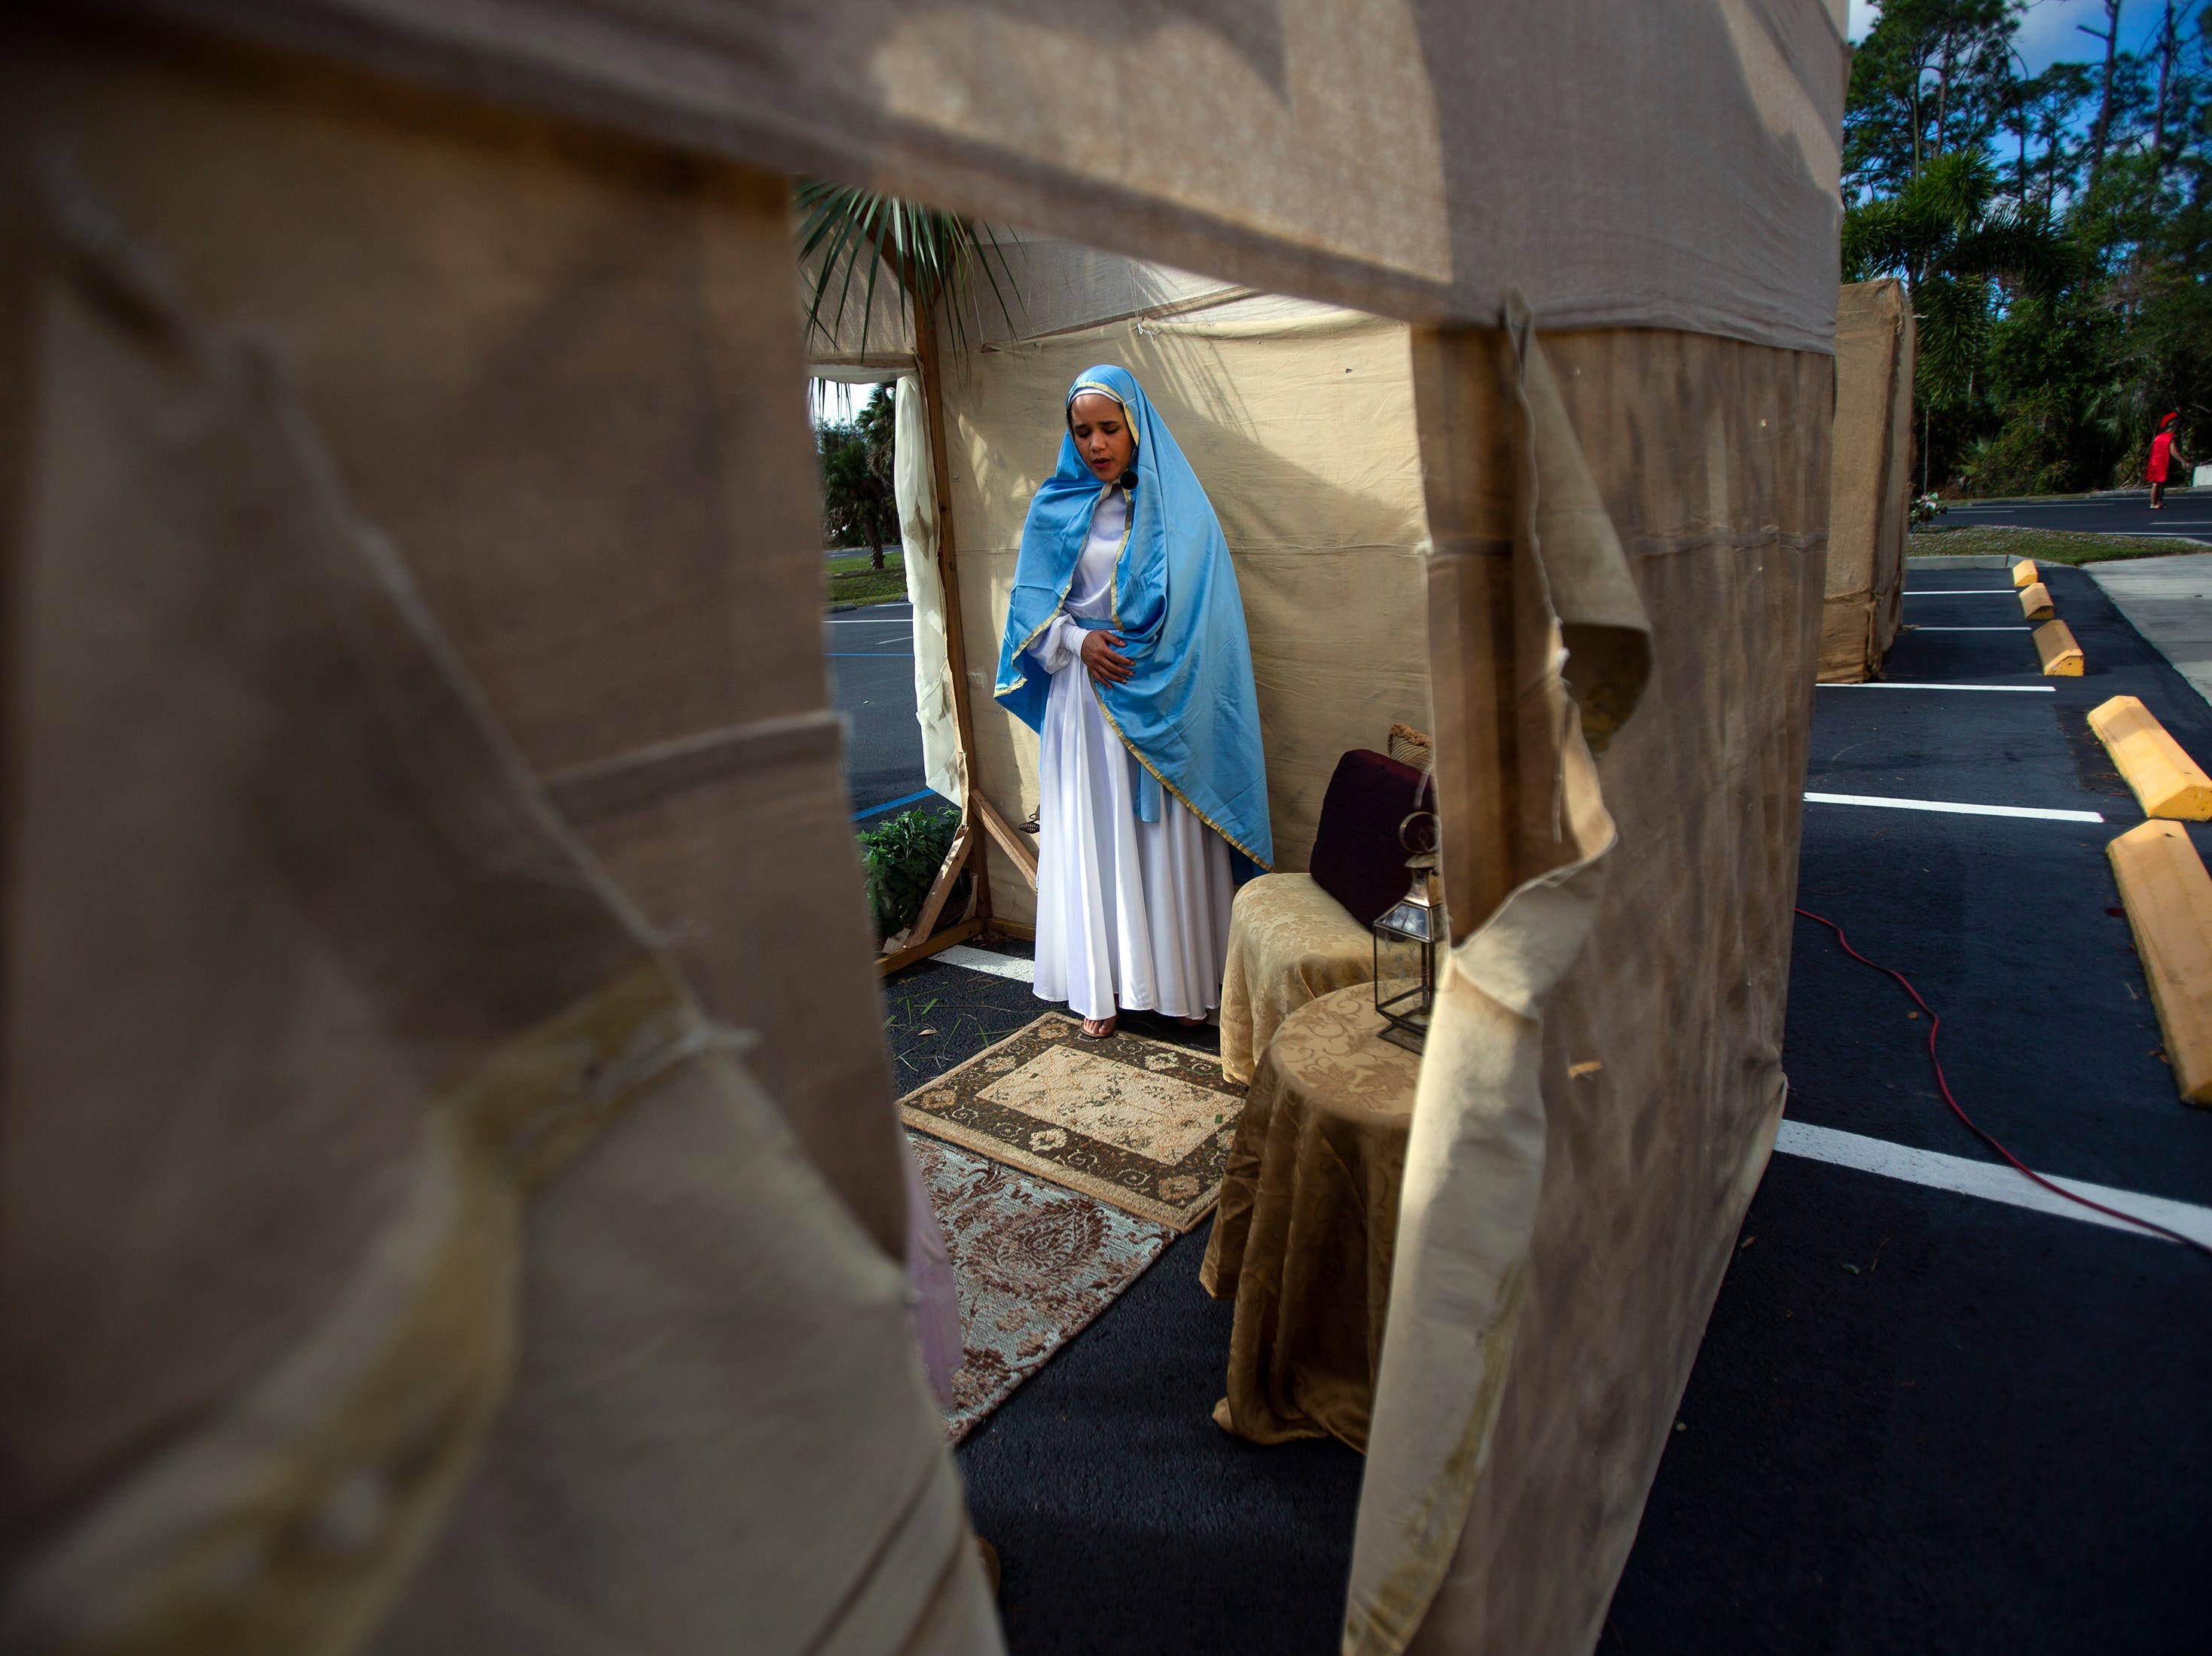 Sofia Velez plays Mary in the Annunciation to the Blessed Virgin Mary scene of the live nativity at St. Agnes Catholic Church on Sunday, Dec. 16, 2018, in East Naples.